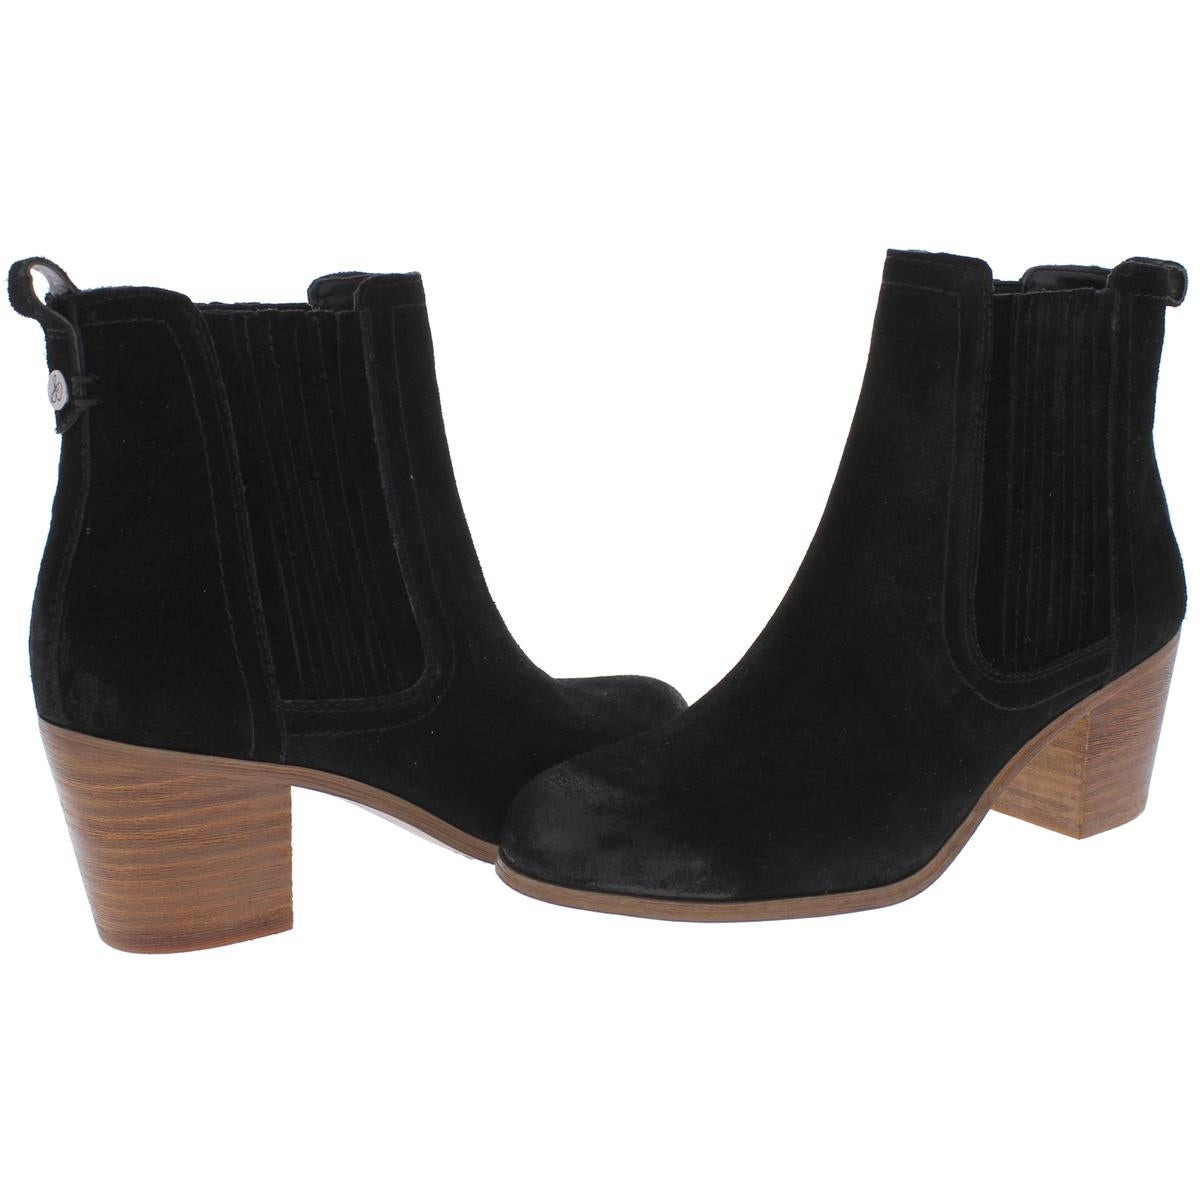 fde2cee19 Shop Sam Edelman Womens Lance Ankle Boots Suede Block Heel - Free Shipping  On Orders Over  45 - Overstock - 21178009